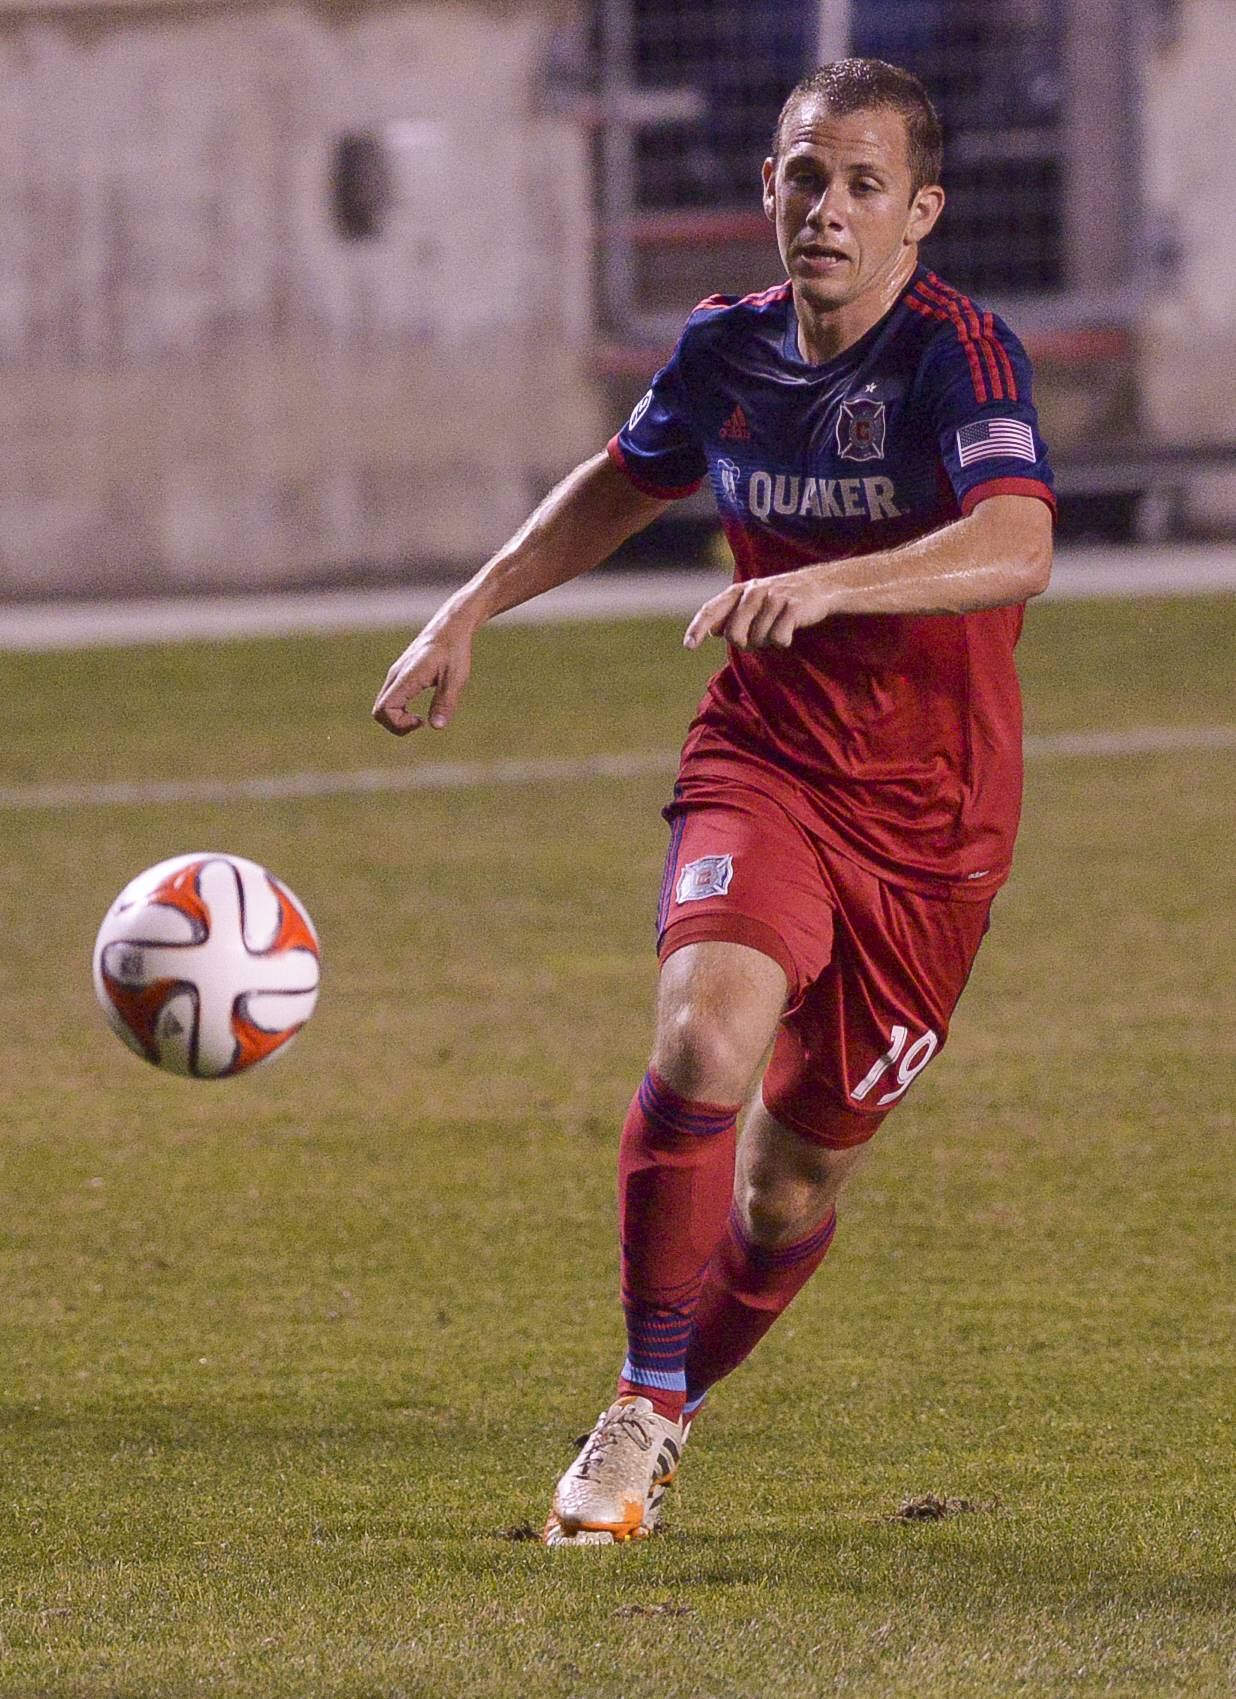 Lake Forest native Harry Shipp was thought to be a key piece in the Chicago Fire's rebuilding effort. Now he won't be around to see it completed as Fire officials traded the popular midfielder to Montreal on Saturday.